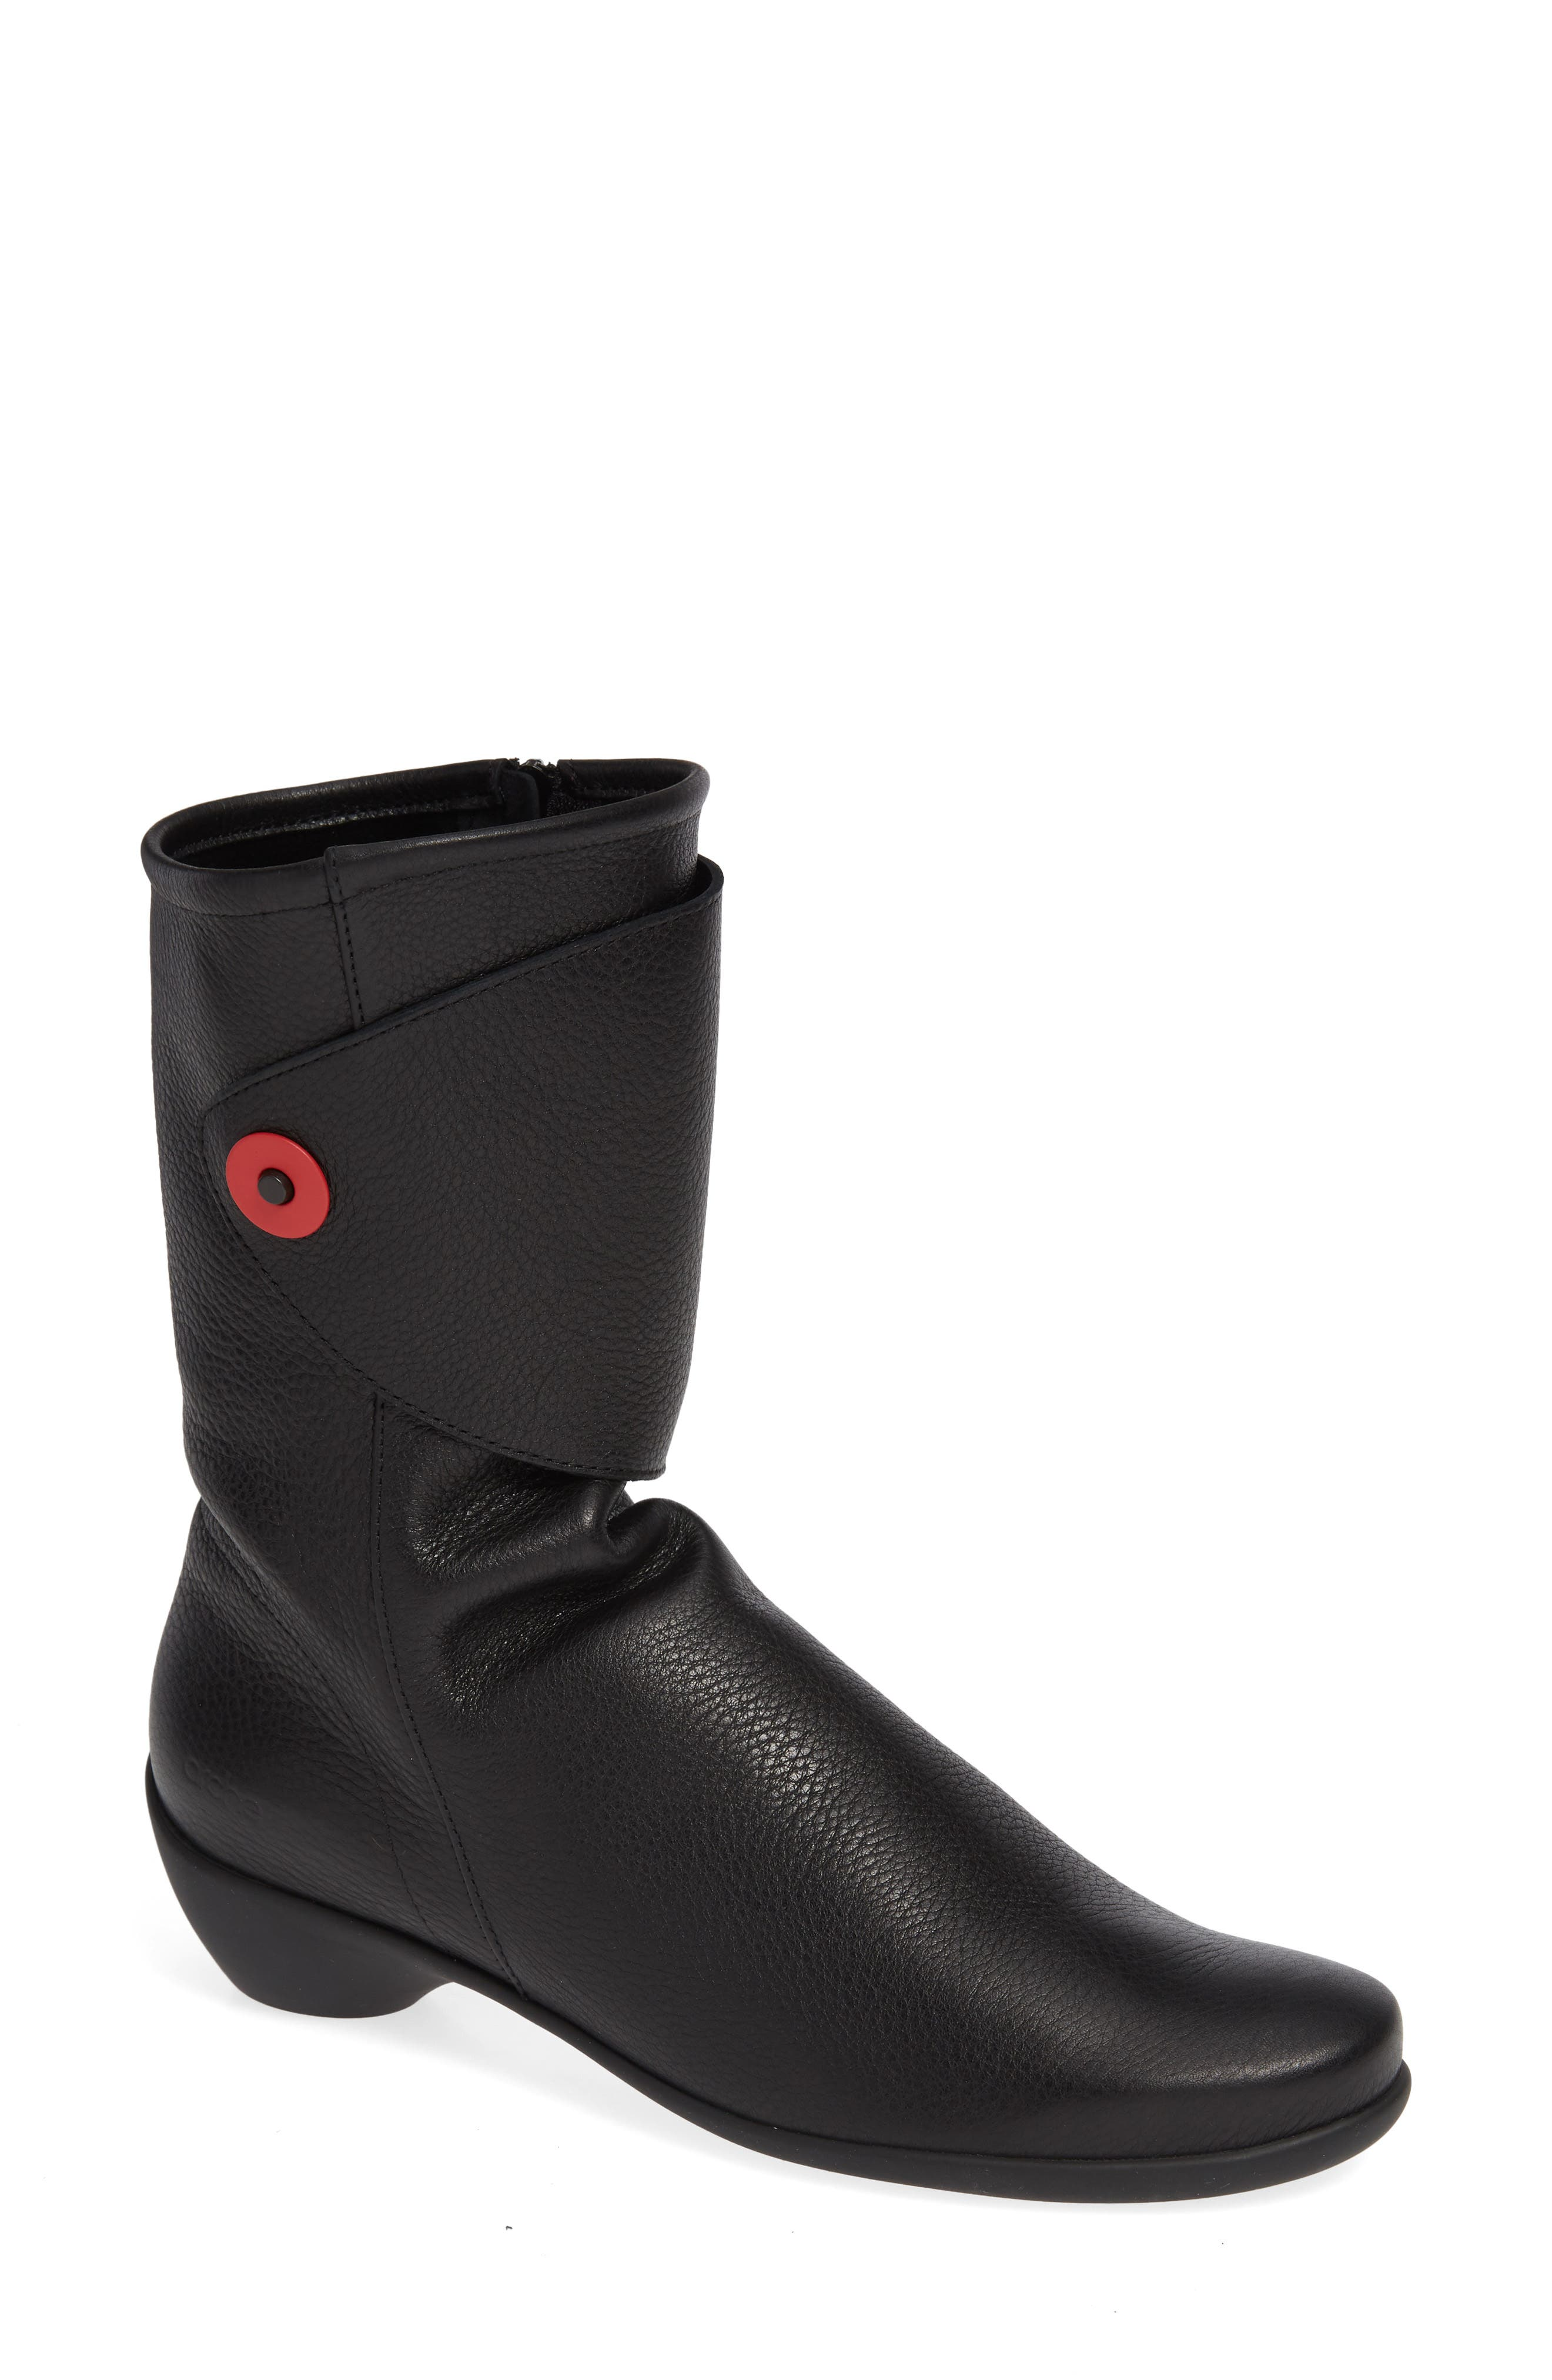 ARCHE Tessmy Water Resistant Boot in Noir/ Rouge Leather